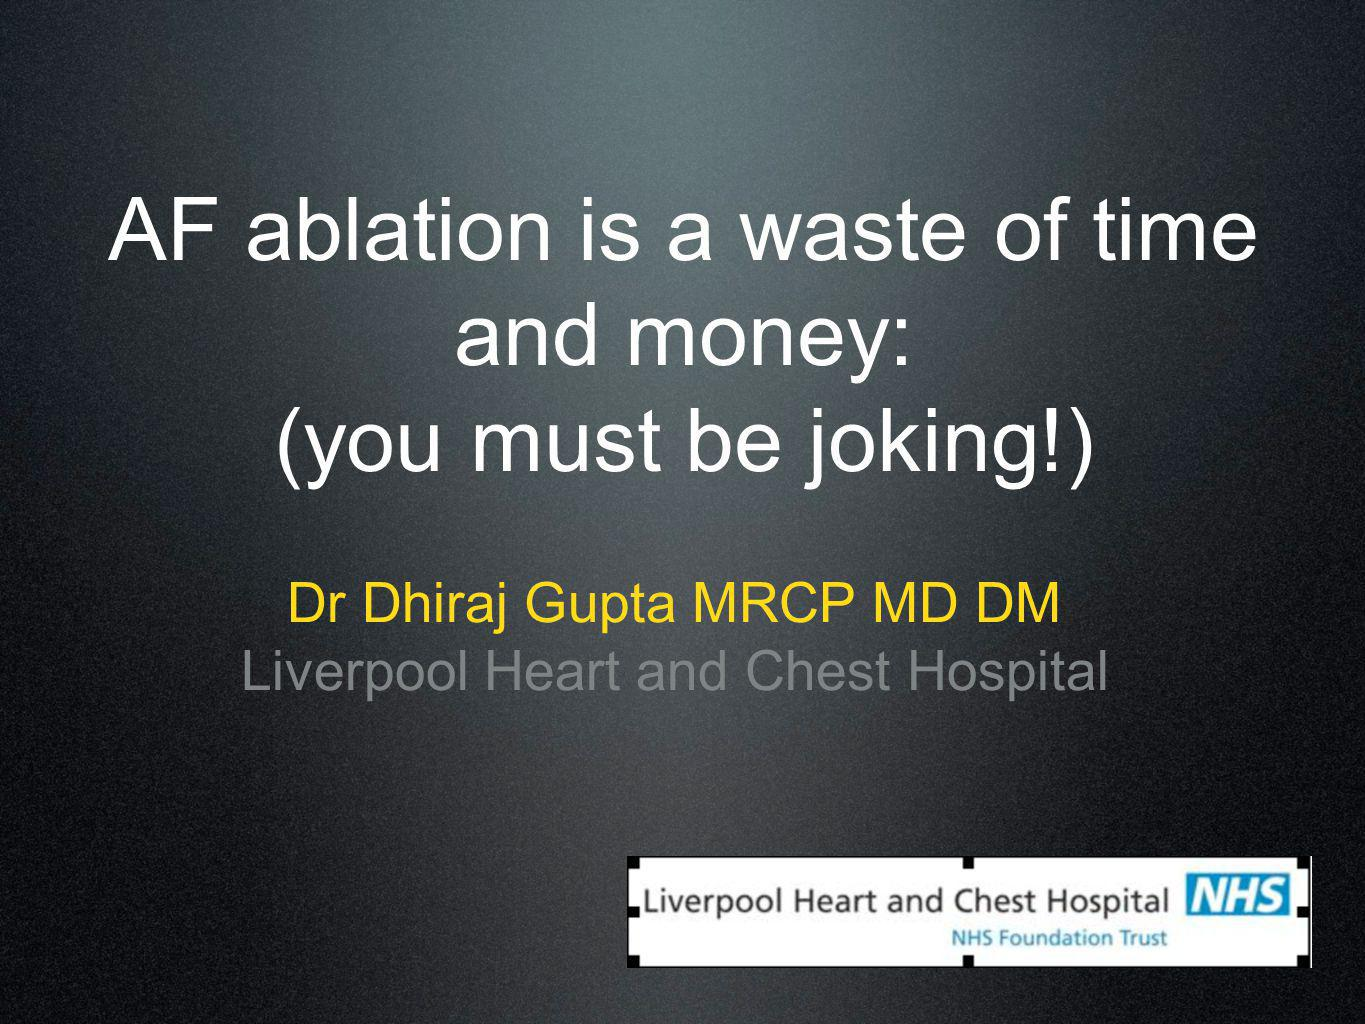 AF ablation is a waste of time and money: (you must be joking!)